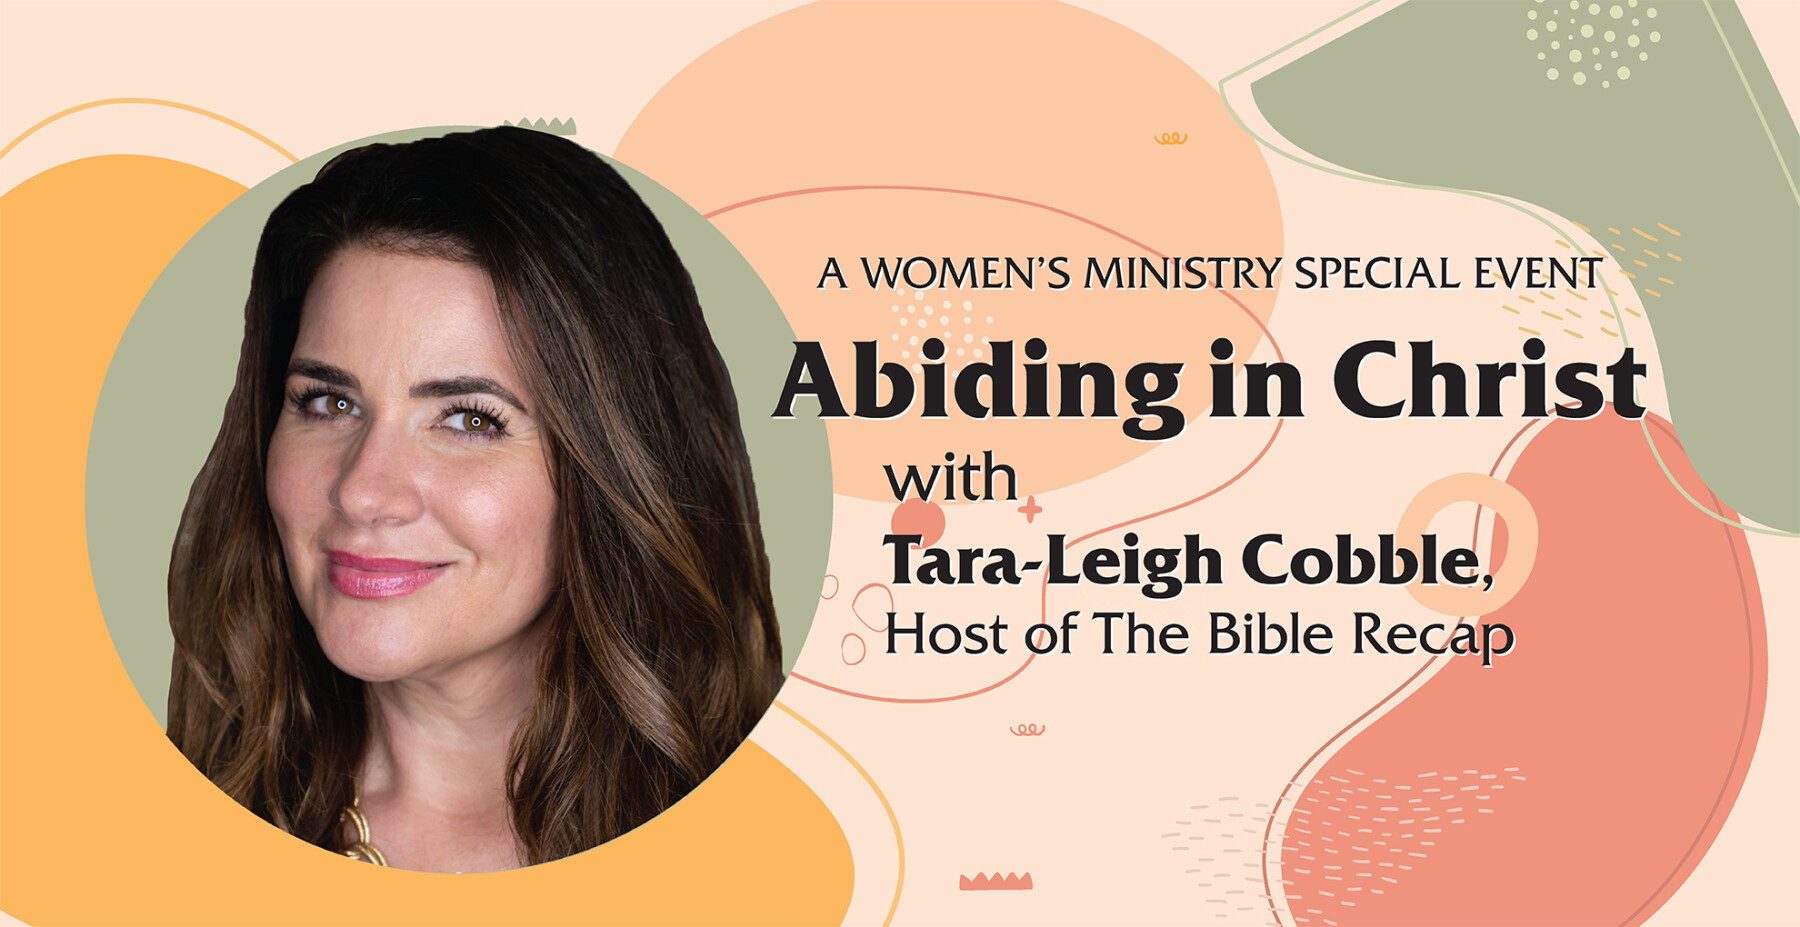 Abiding in Christ with Tara-Leigh Cobble: A Women's Ministry Special Event